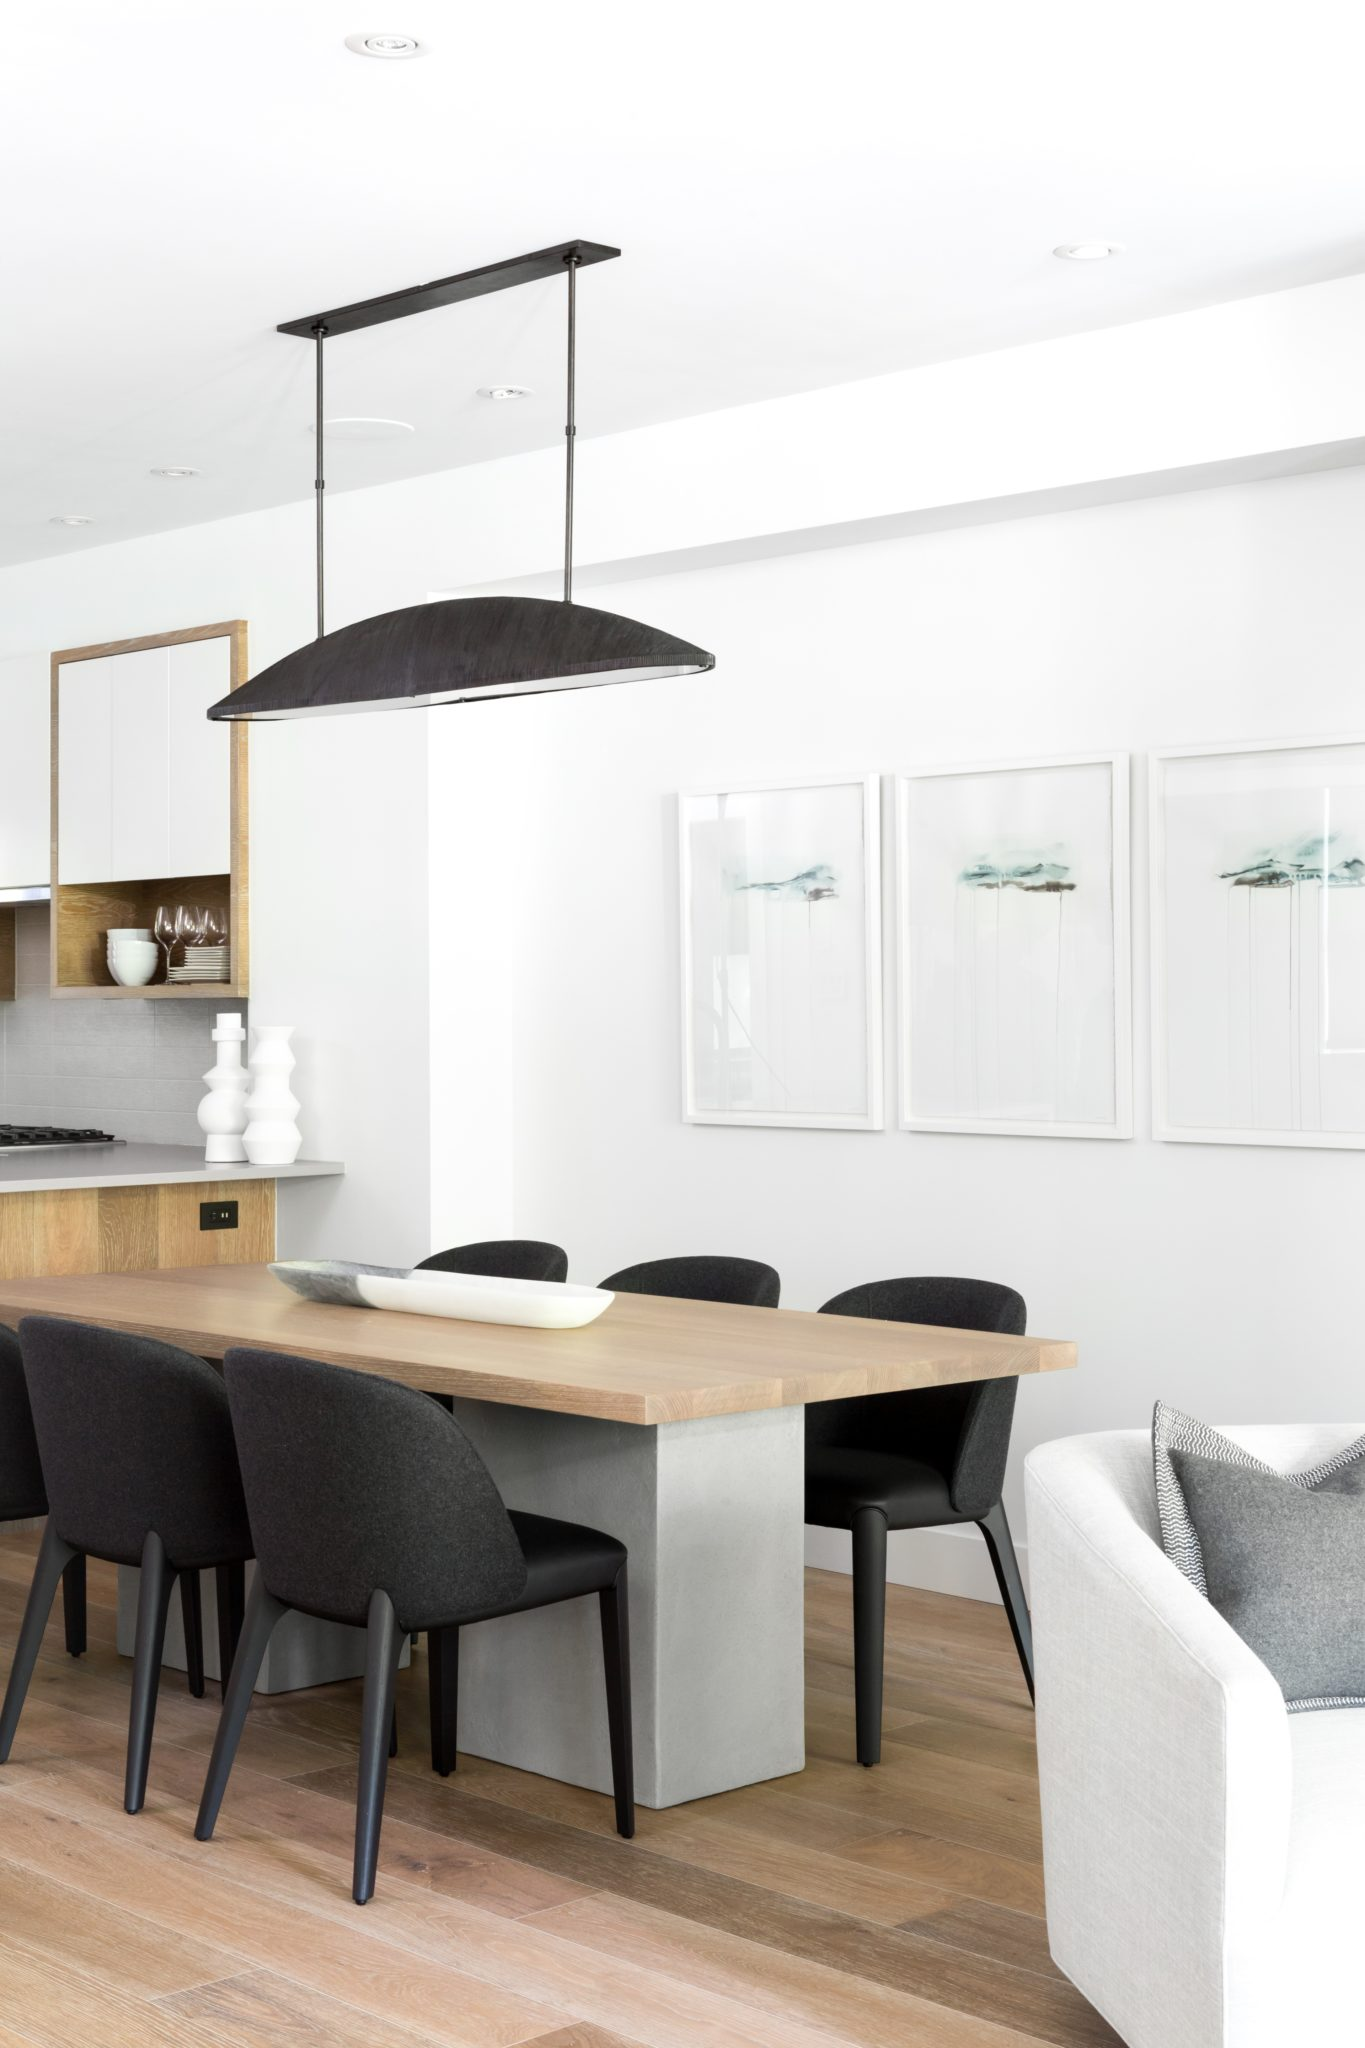 Dining Room | Blackcomb Way Residence by Stephanie Brown Inc.